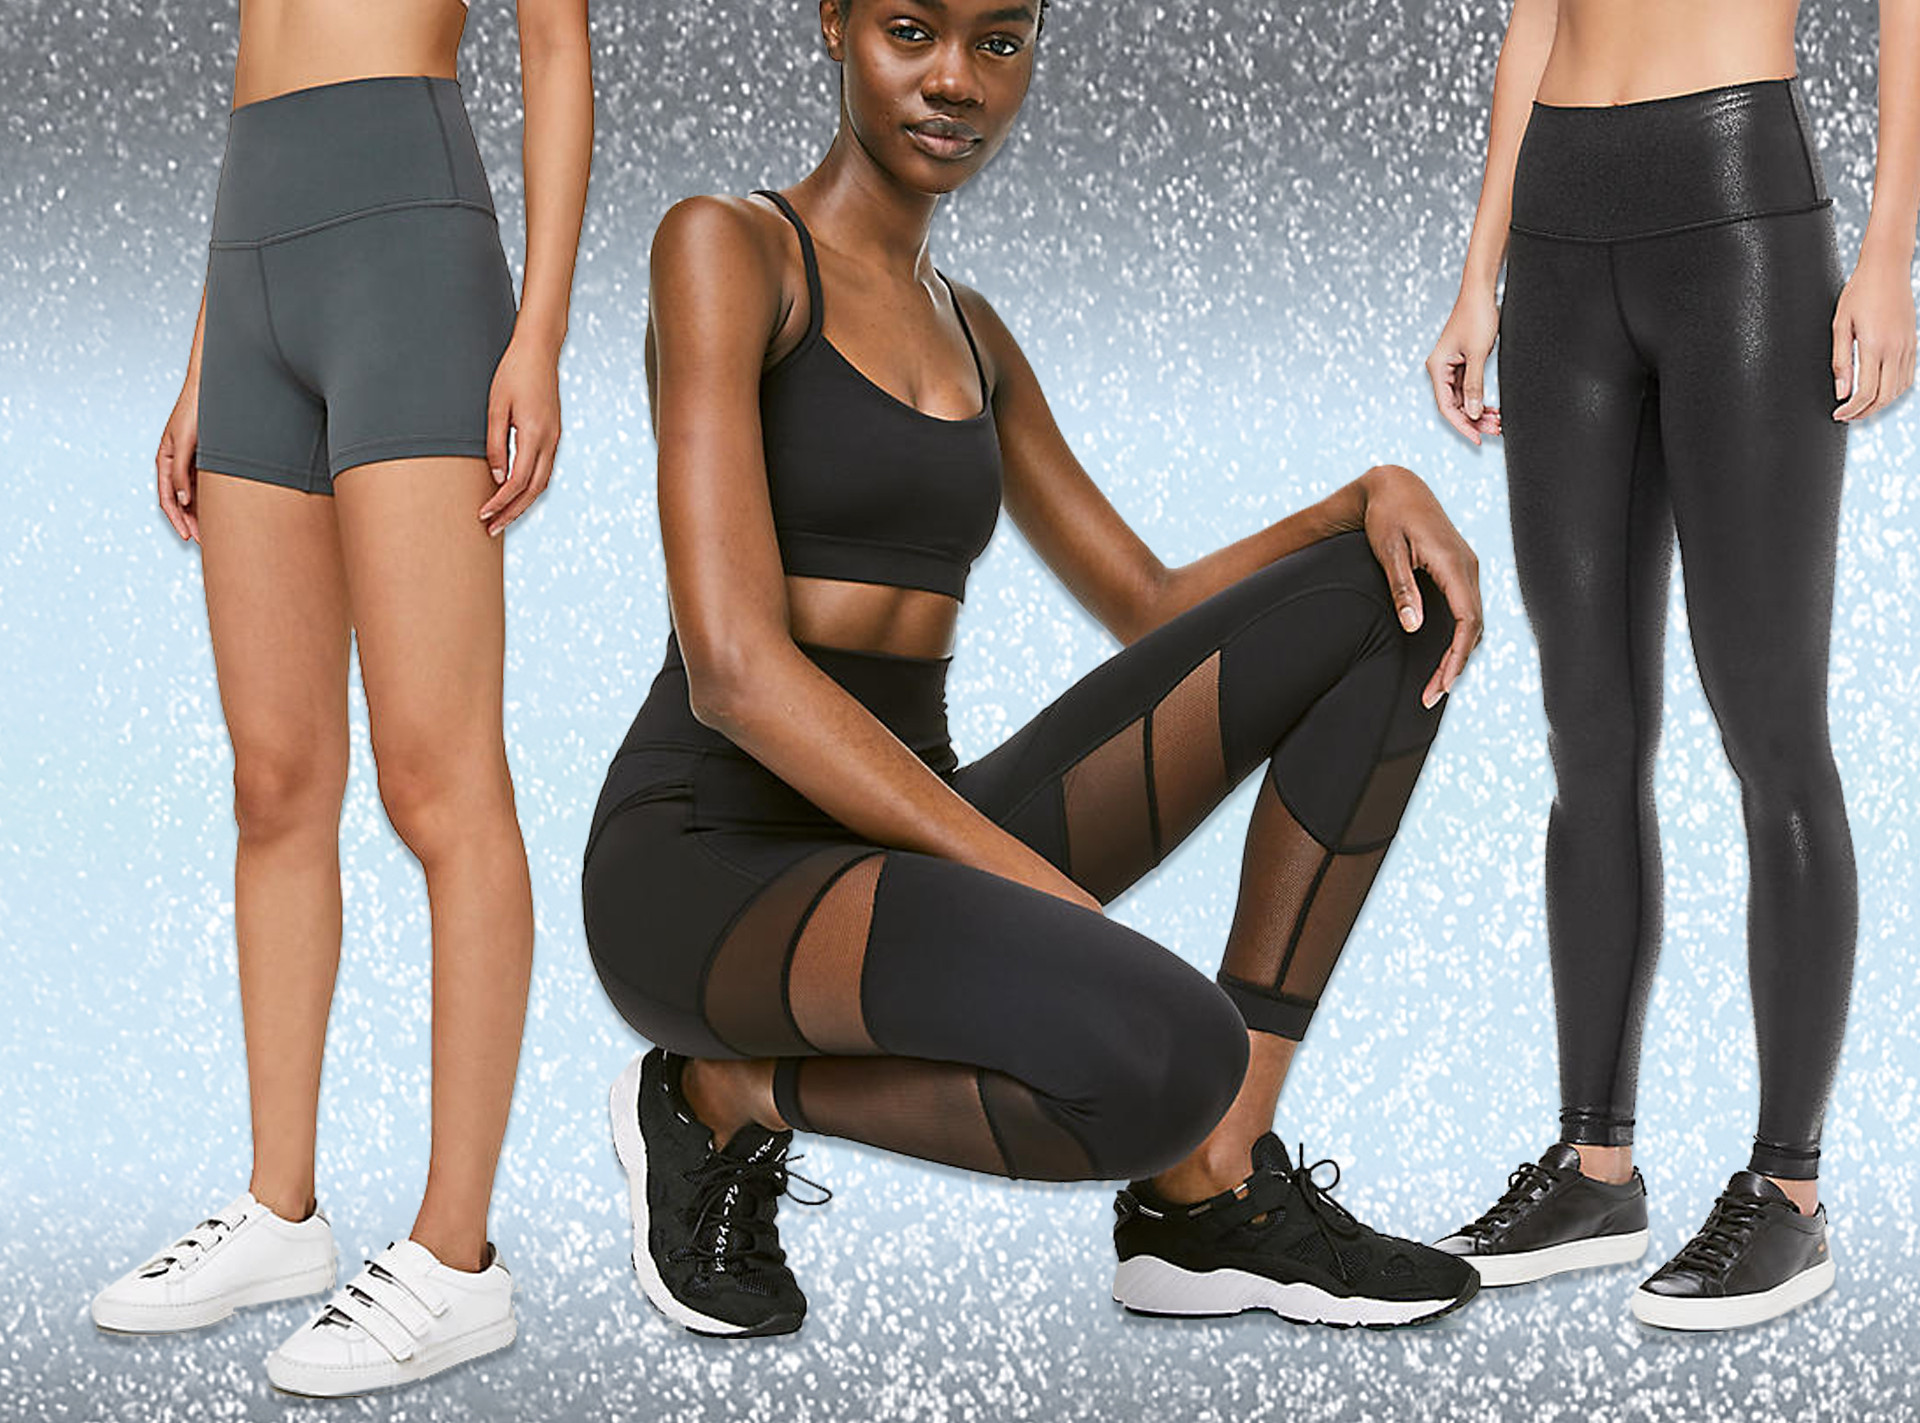 Lululemon Leggings, Yoga Pants & Shorts We're Obsessed With